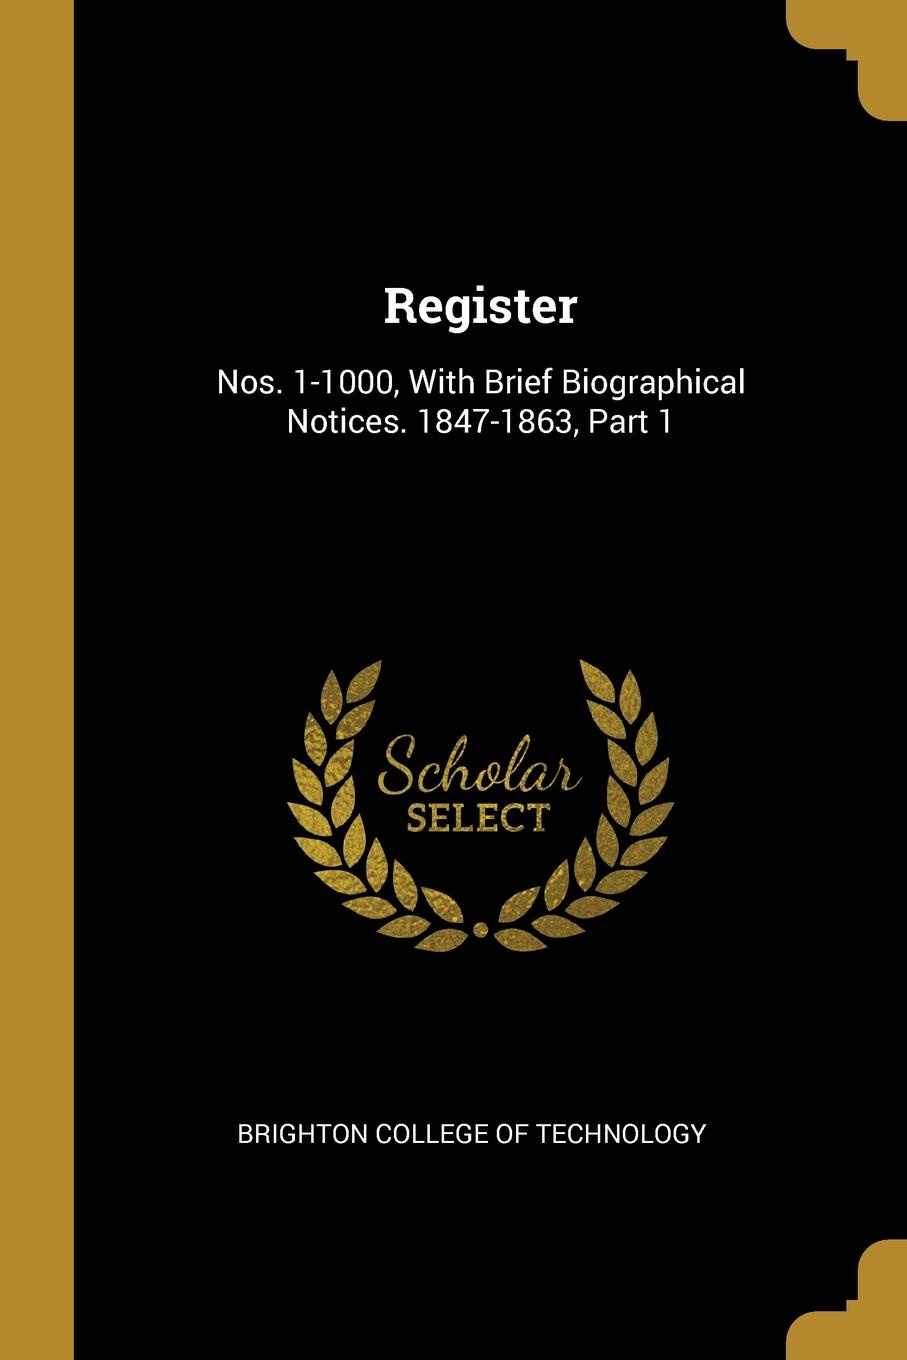 Register. Nos. 1-1000, With Brief Biographical Notices. 1847-1863, Part 1